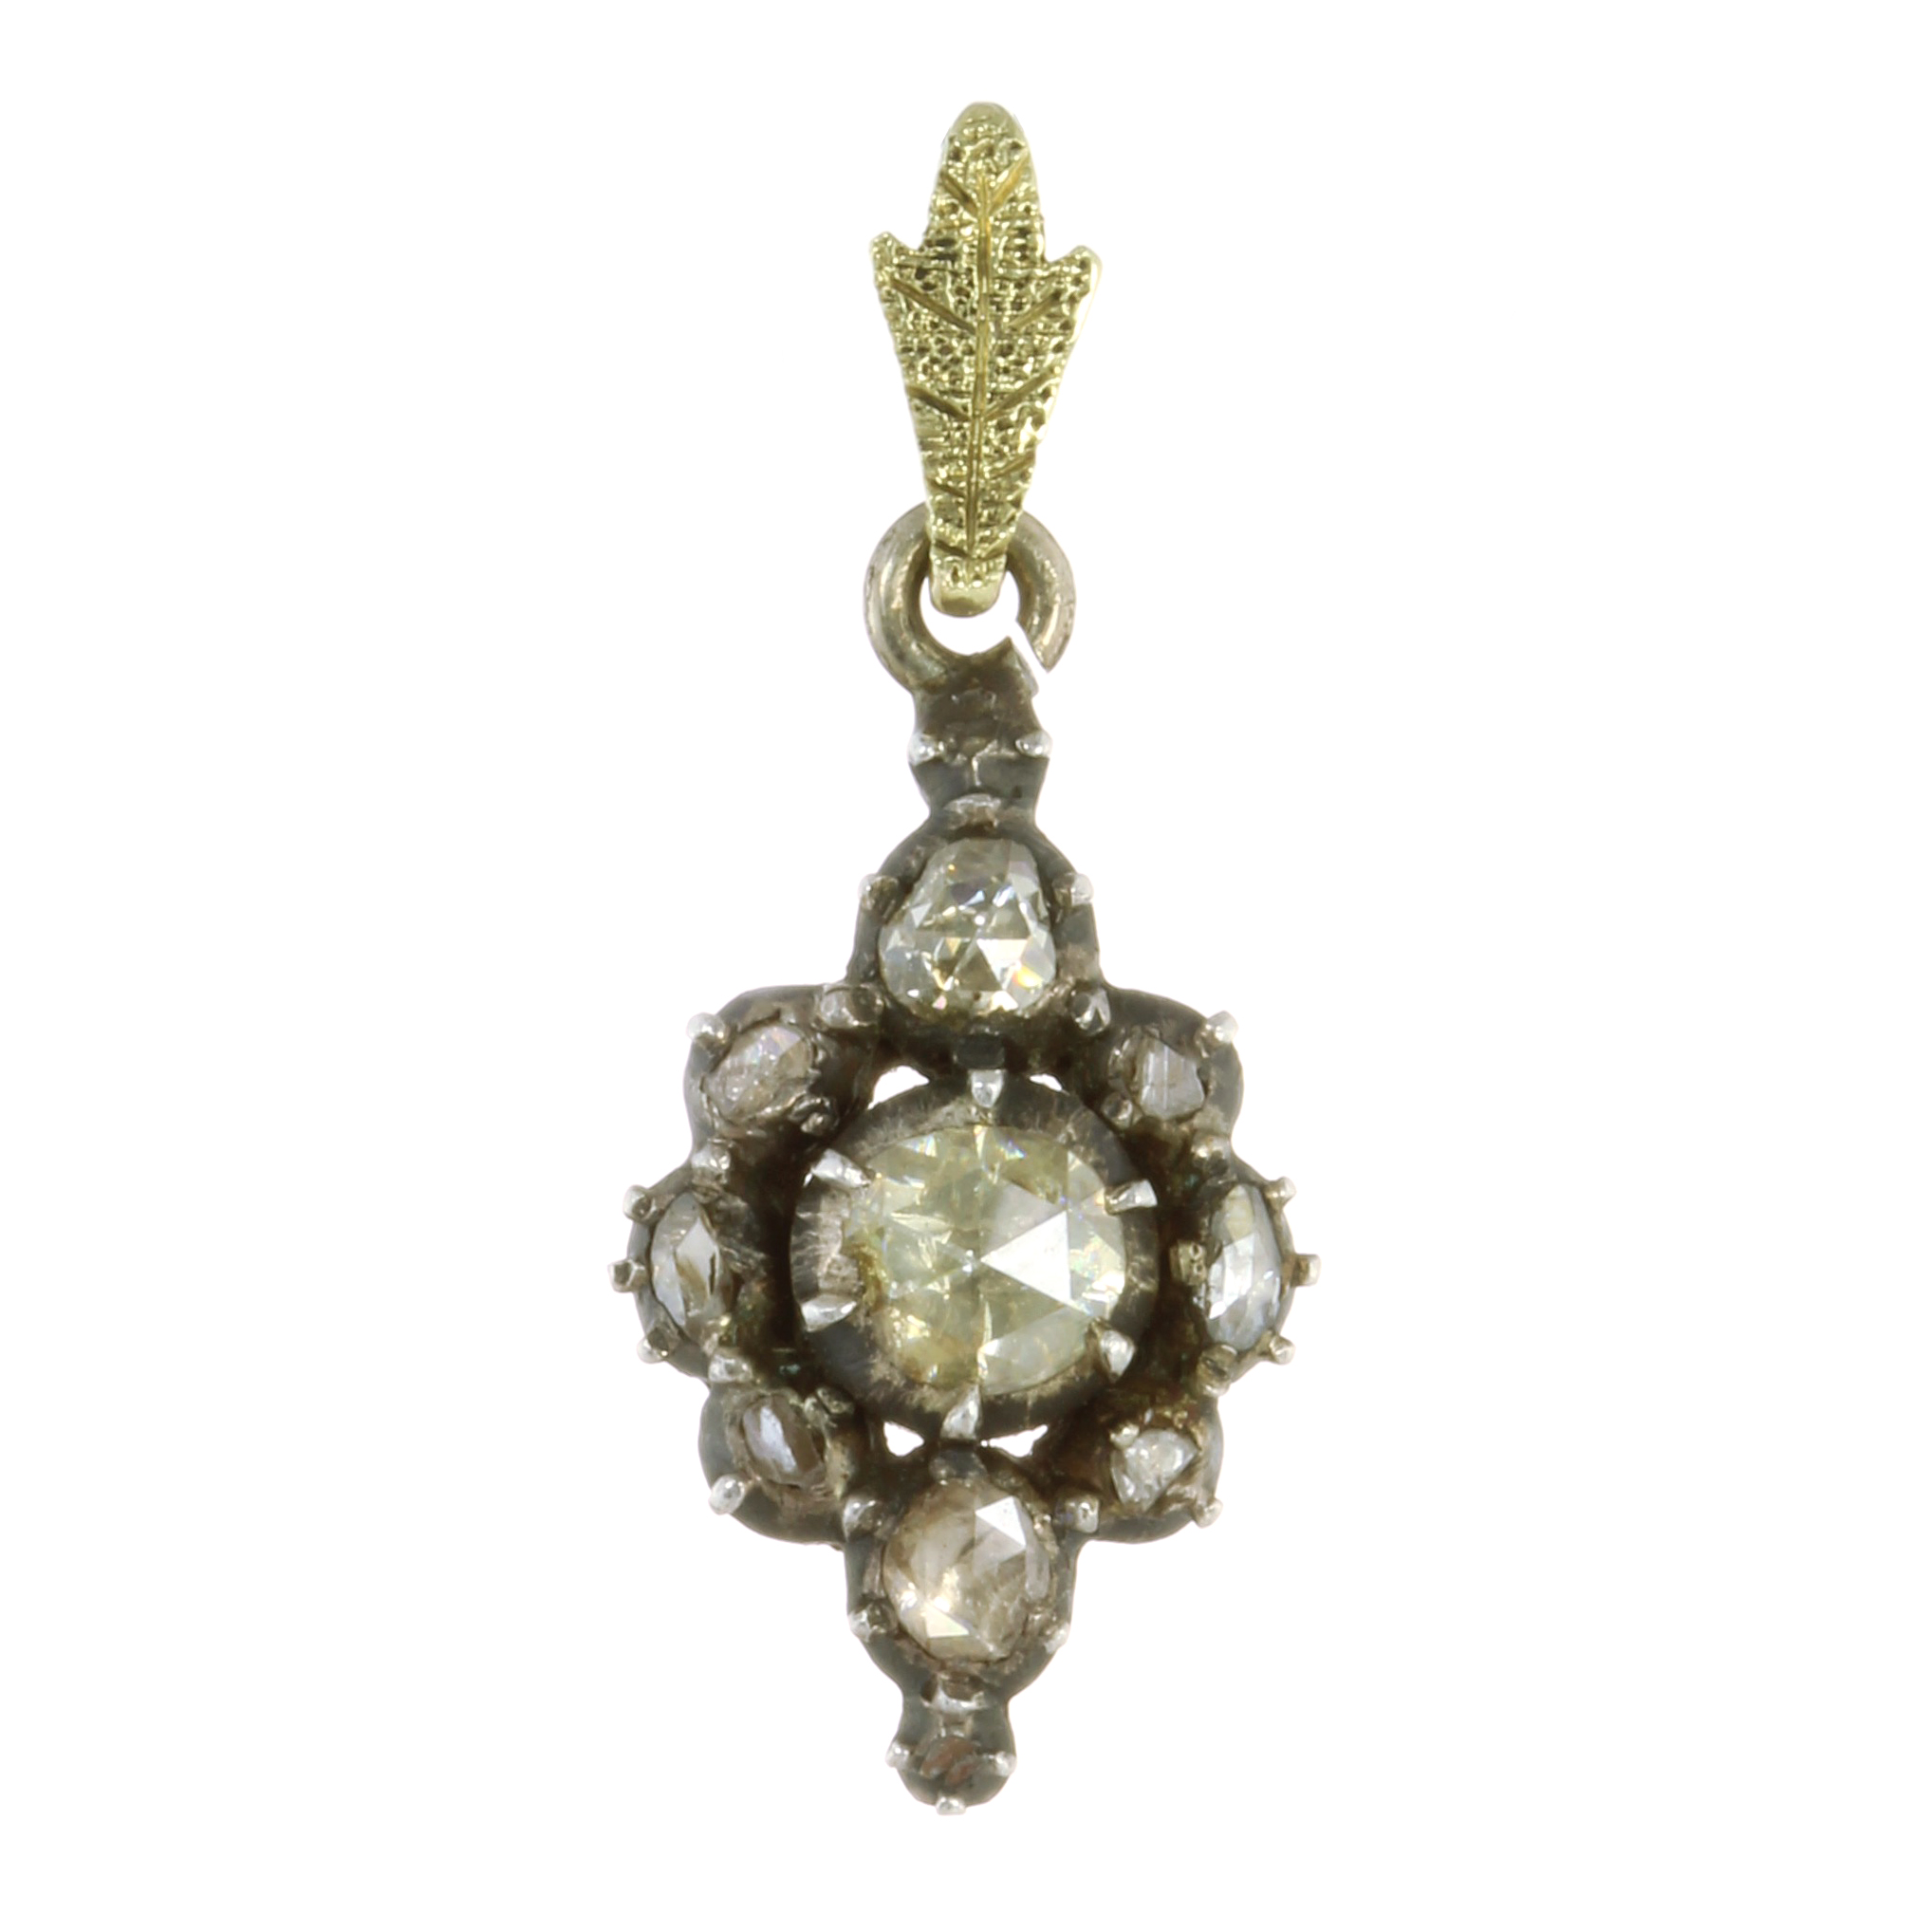 Los 22 - AN ANTIQUE DIAMOND PENDANT, DUTCH 19TH CENTURY set with a central rose cut diamond surrounded by a